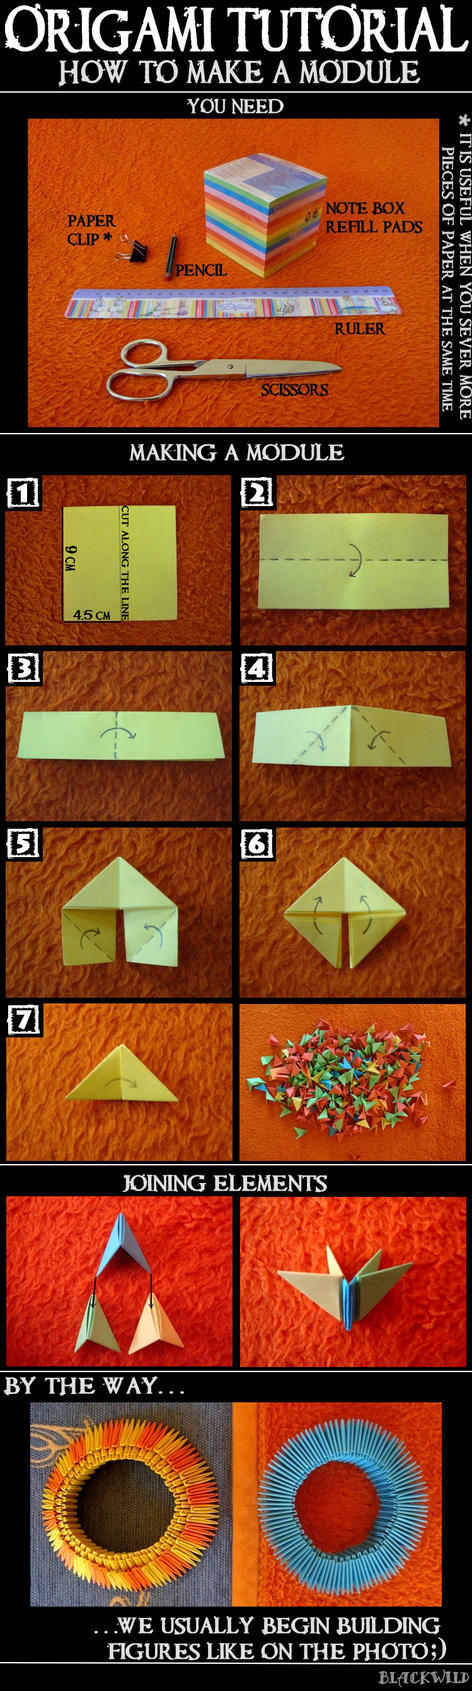 Origami Tutorial - Module by blackwild